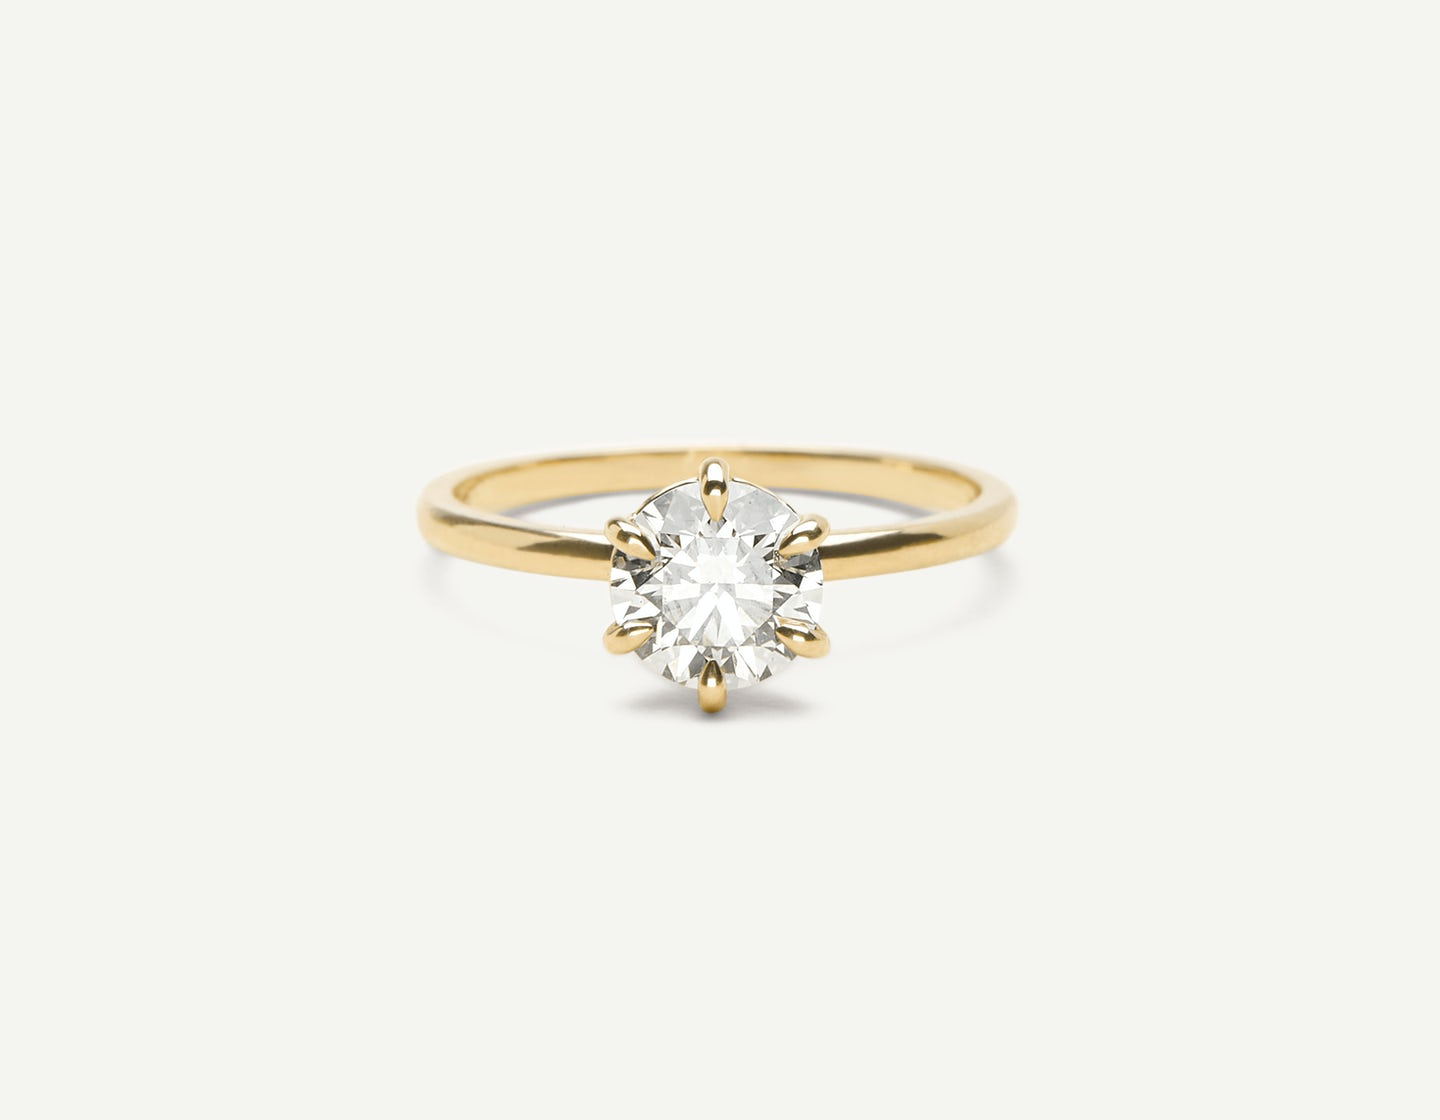 768439832 Solitaire Diamond Engagement Ring by Vrai & Oro